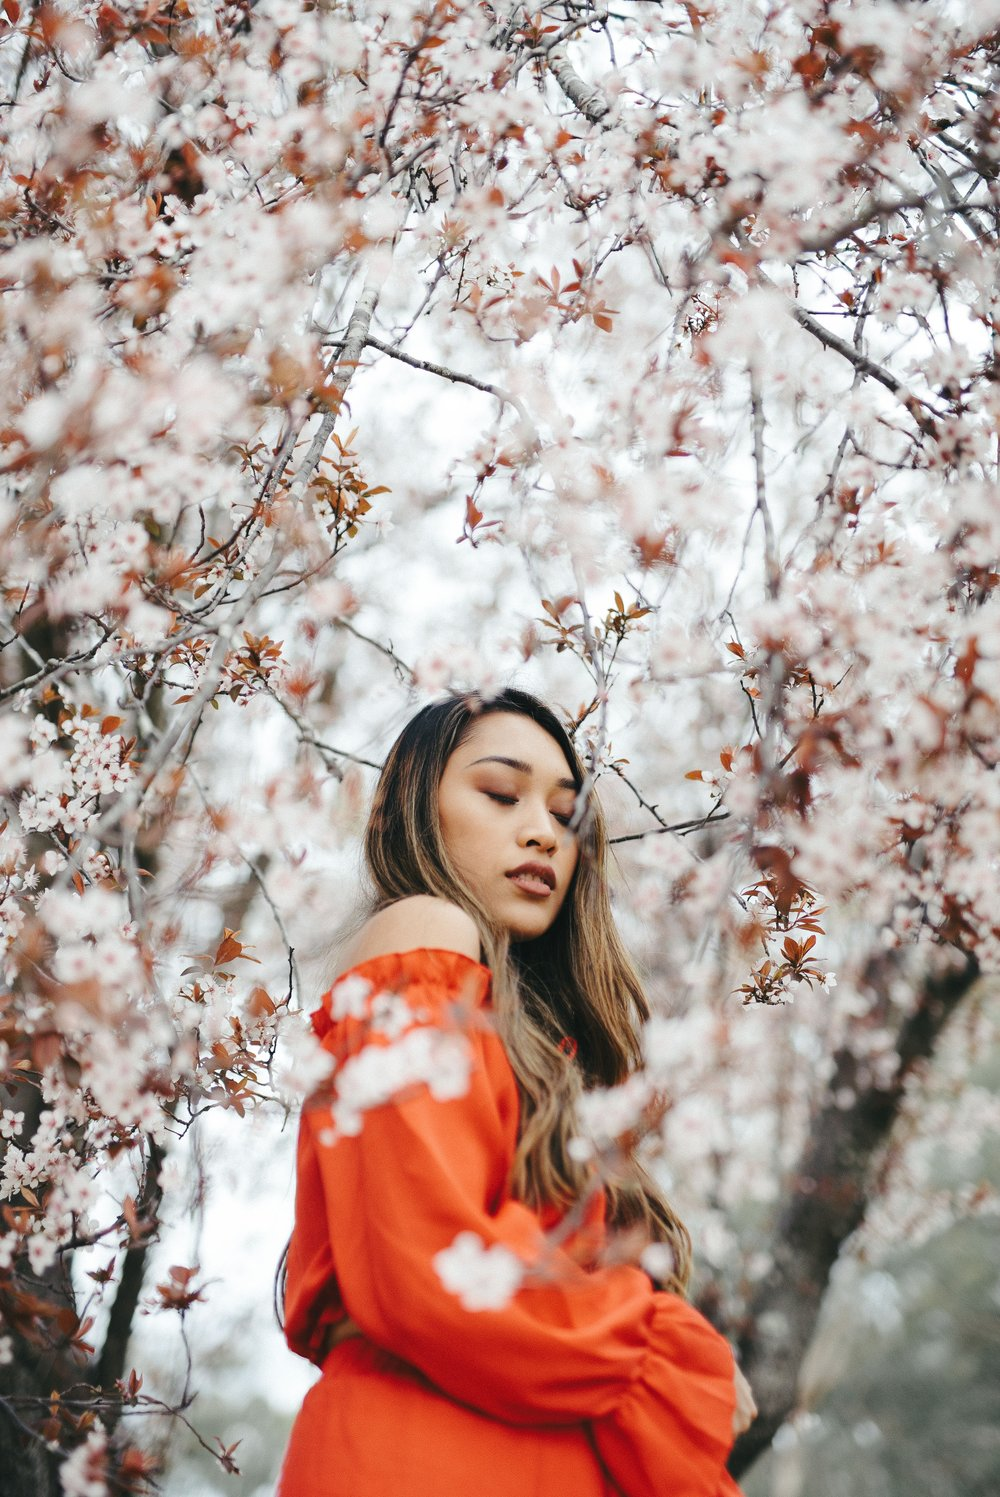 A woman stands in the midst of a full blooming almond tree